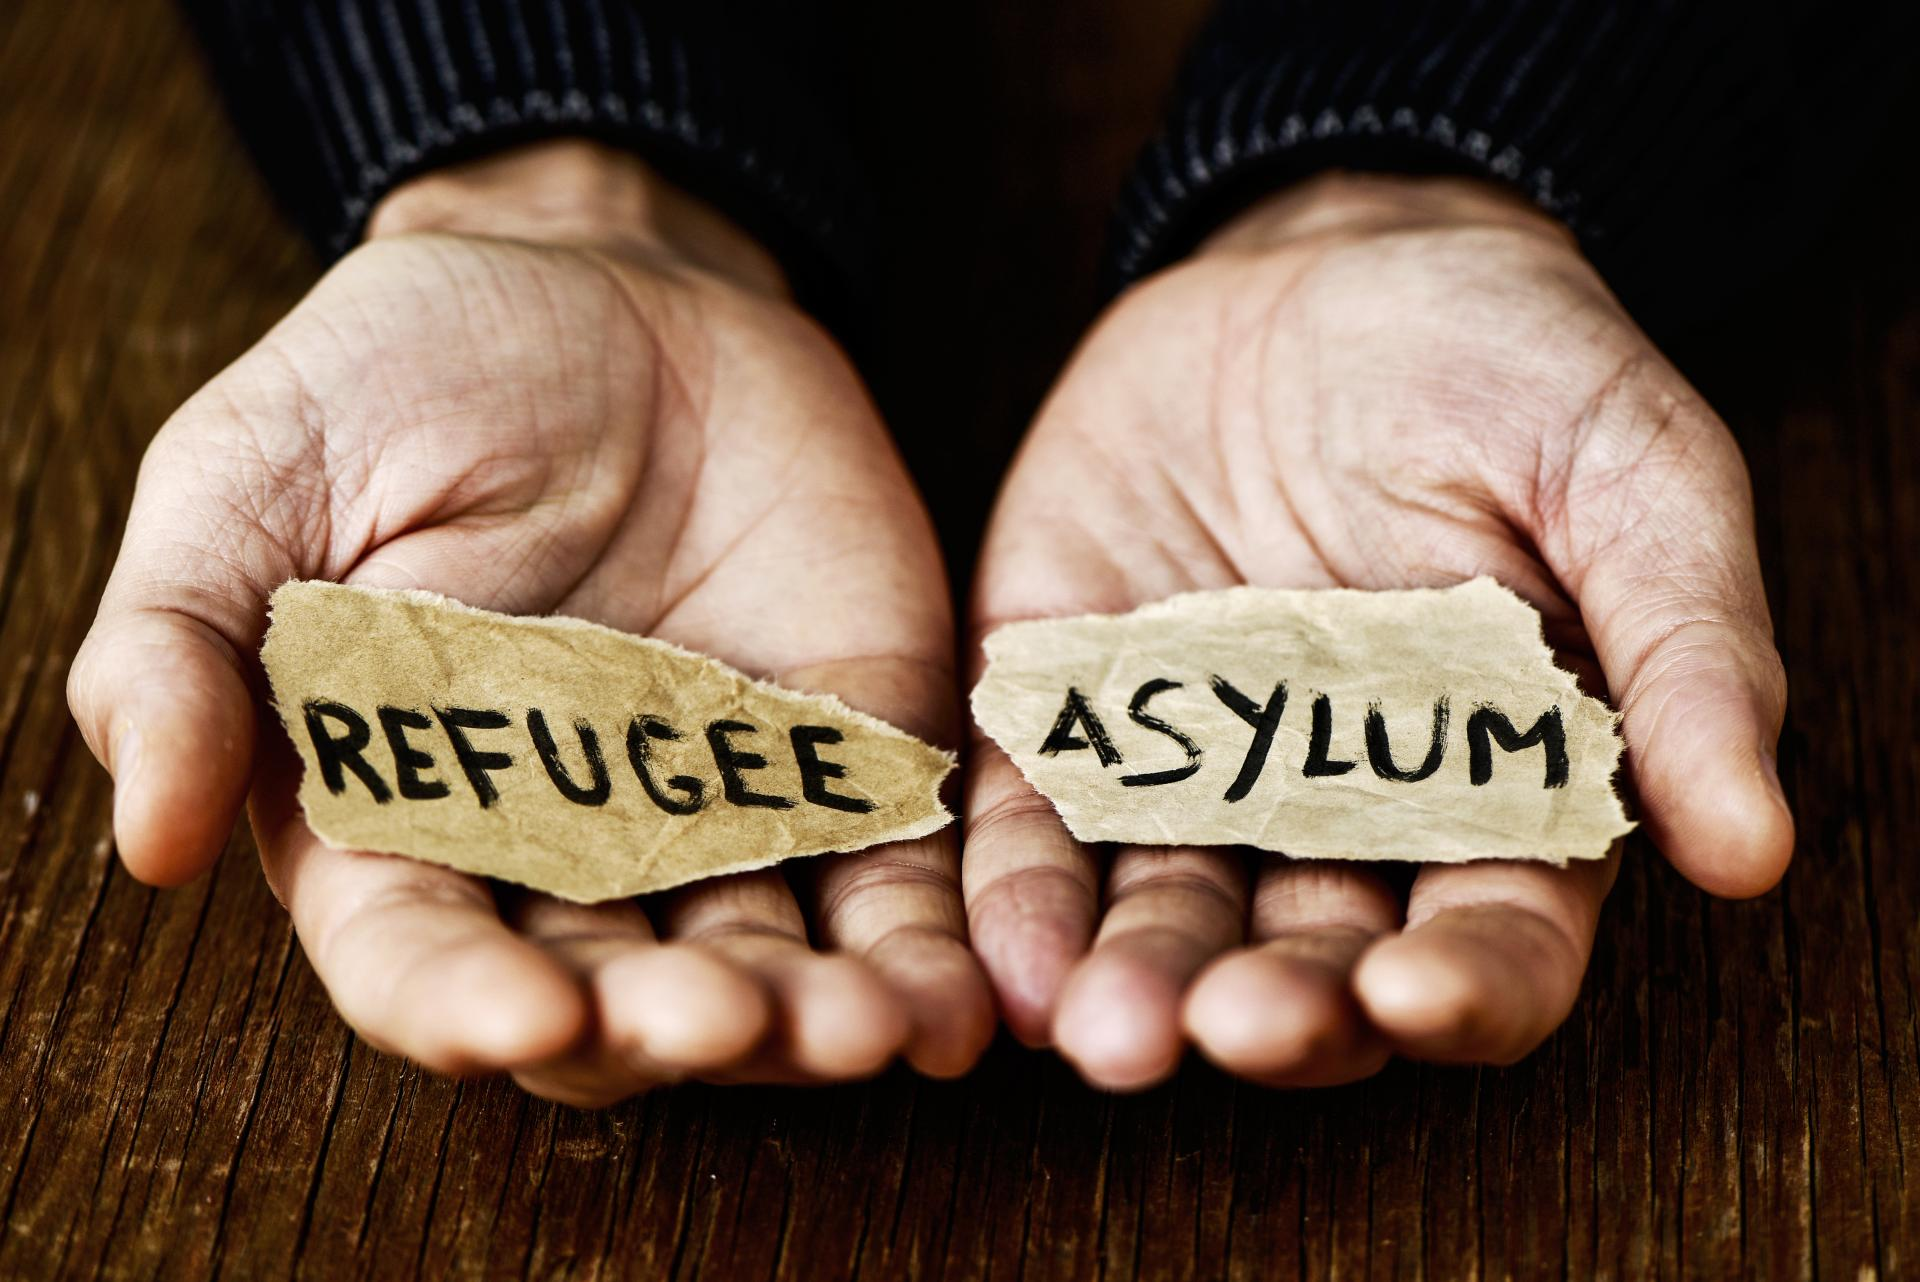 What is the difference between refugees and asylum seekers